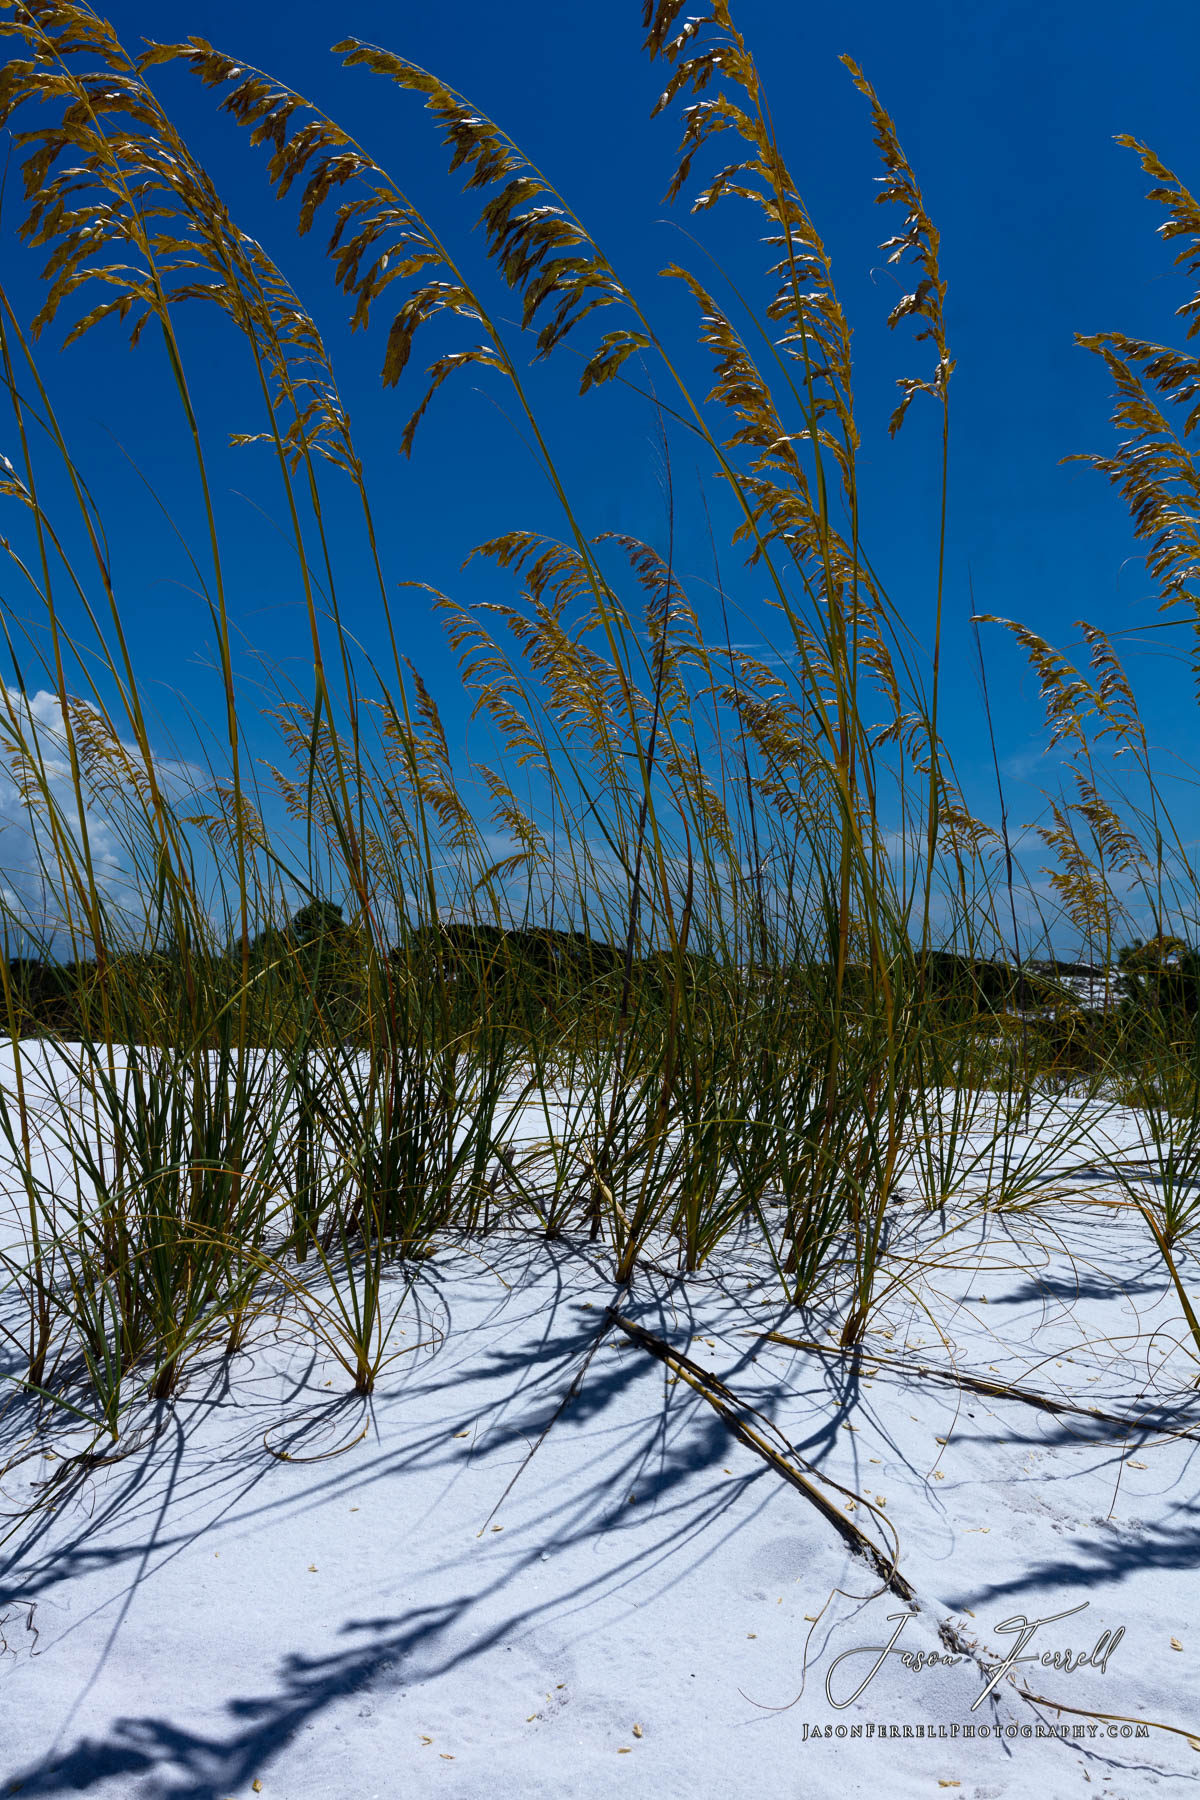 A soothing yet striking image of tall grass casting its shadow under the midday sun on a sand dune.